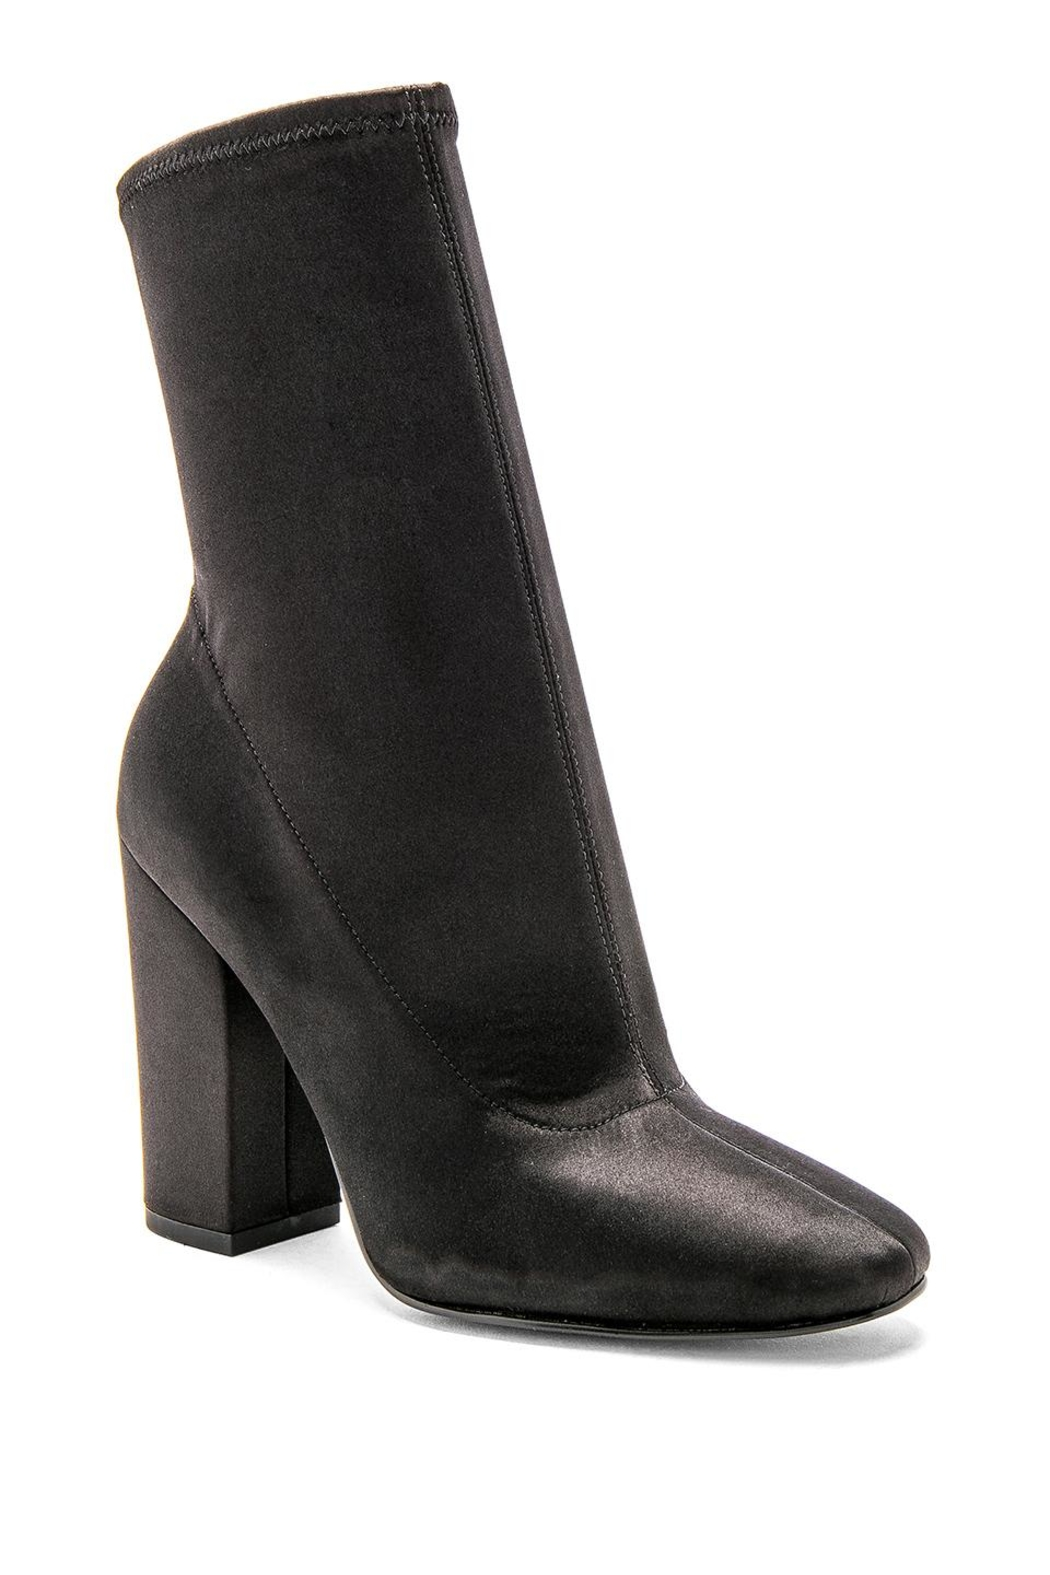 Kendall + Kylie Hailey Bootie - Side Cropped Image